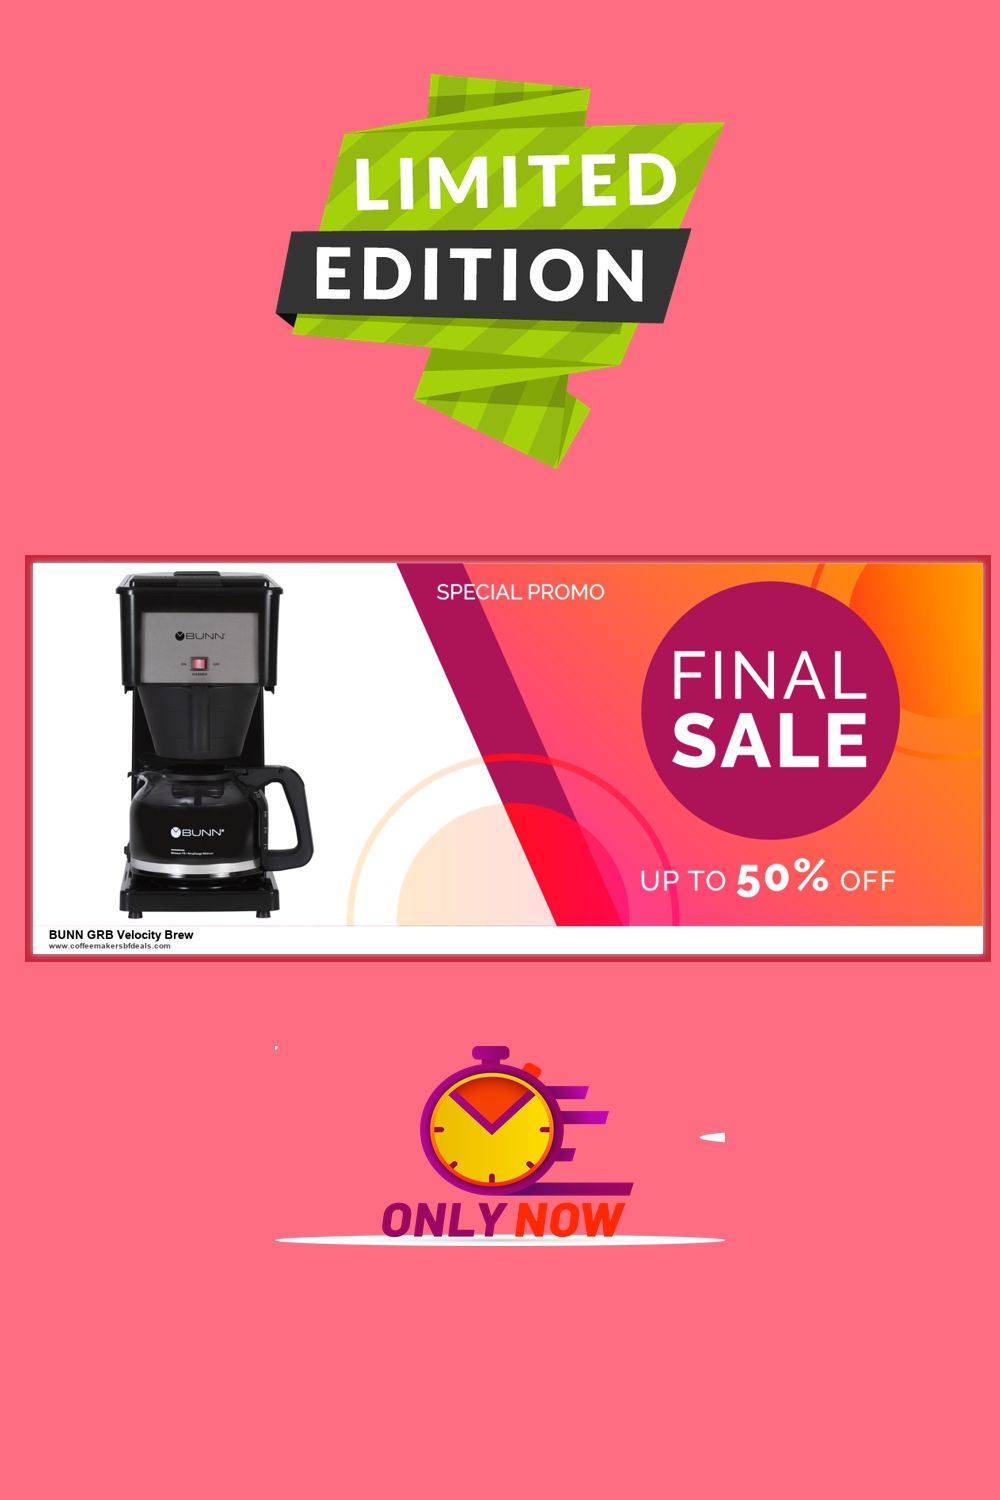 10 Best Bunn Grb Velocity Brew Coffee Maker Black Friday Cyber Monday Deals 2020 In 2020 Coffee Brewing Brewing Coffee Tastes Better